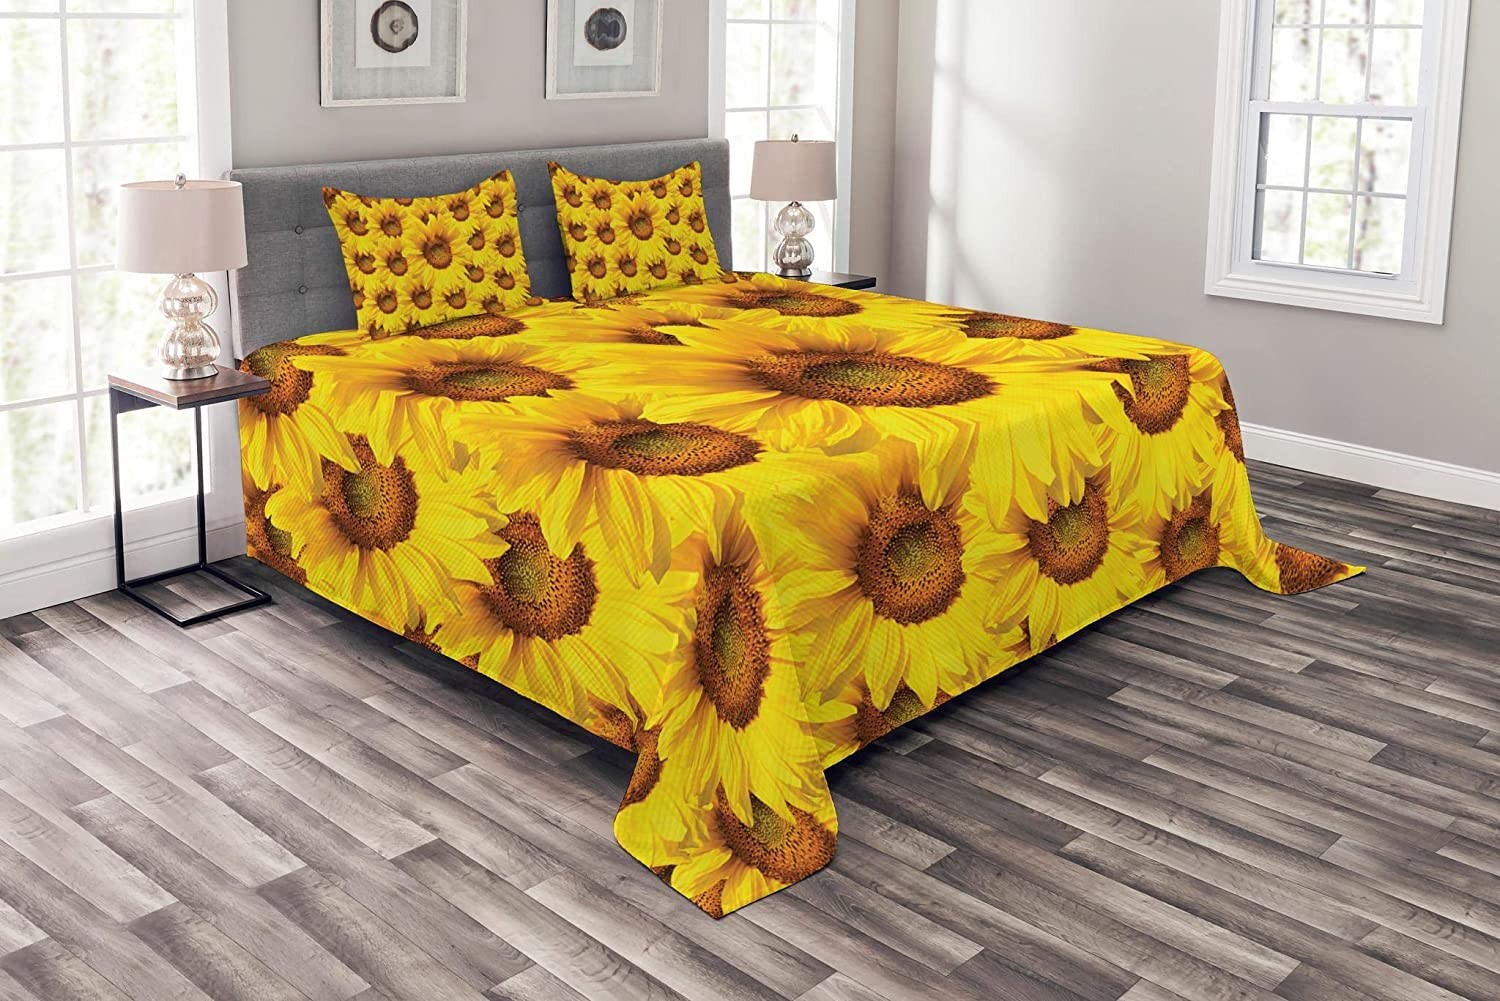 Lunarable Sunflower Bedspread Set Queen Size, Sunflower Bouquet Flourishing Botany Morning Vibrant color Picture Print, Decorative Quilted 3 Piece Coverlet Set with 2 Pillow Shams, Yellow Mustard